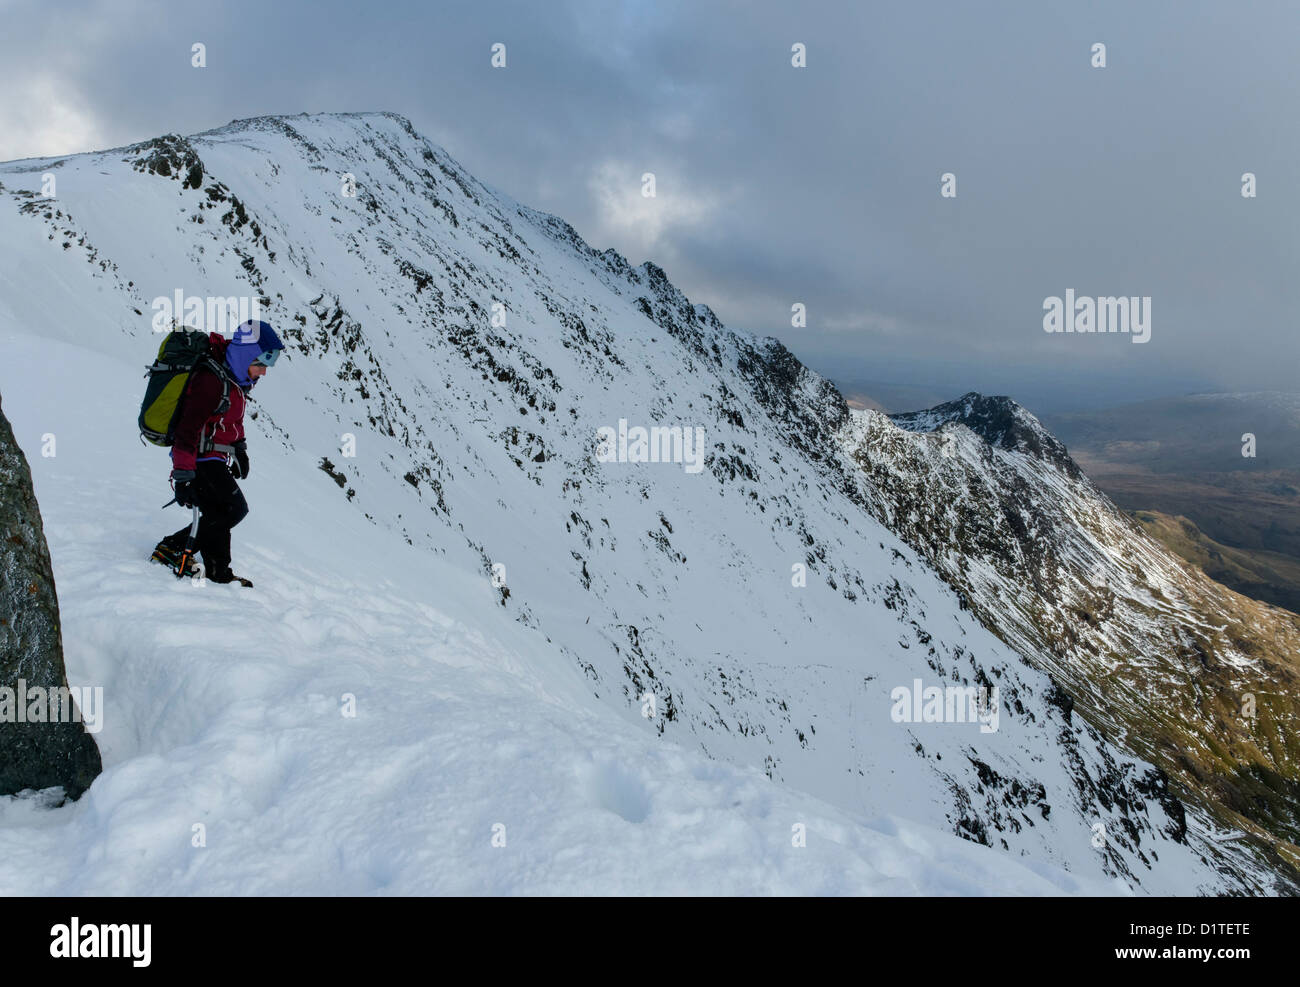 A hillwalker on Snowdon in winter conditions - Stock Image